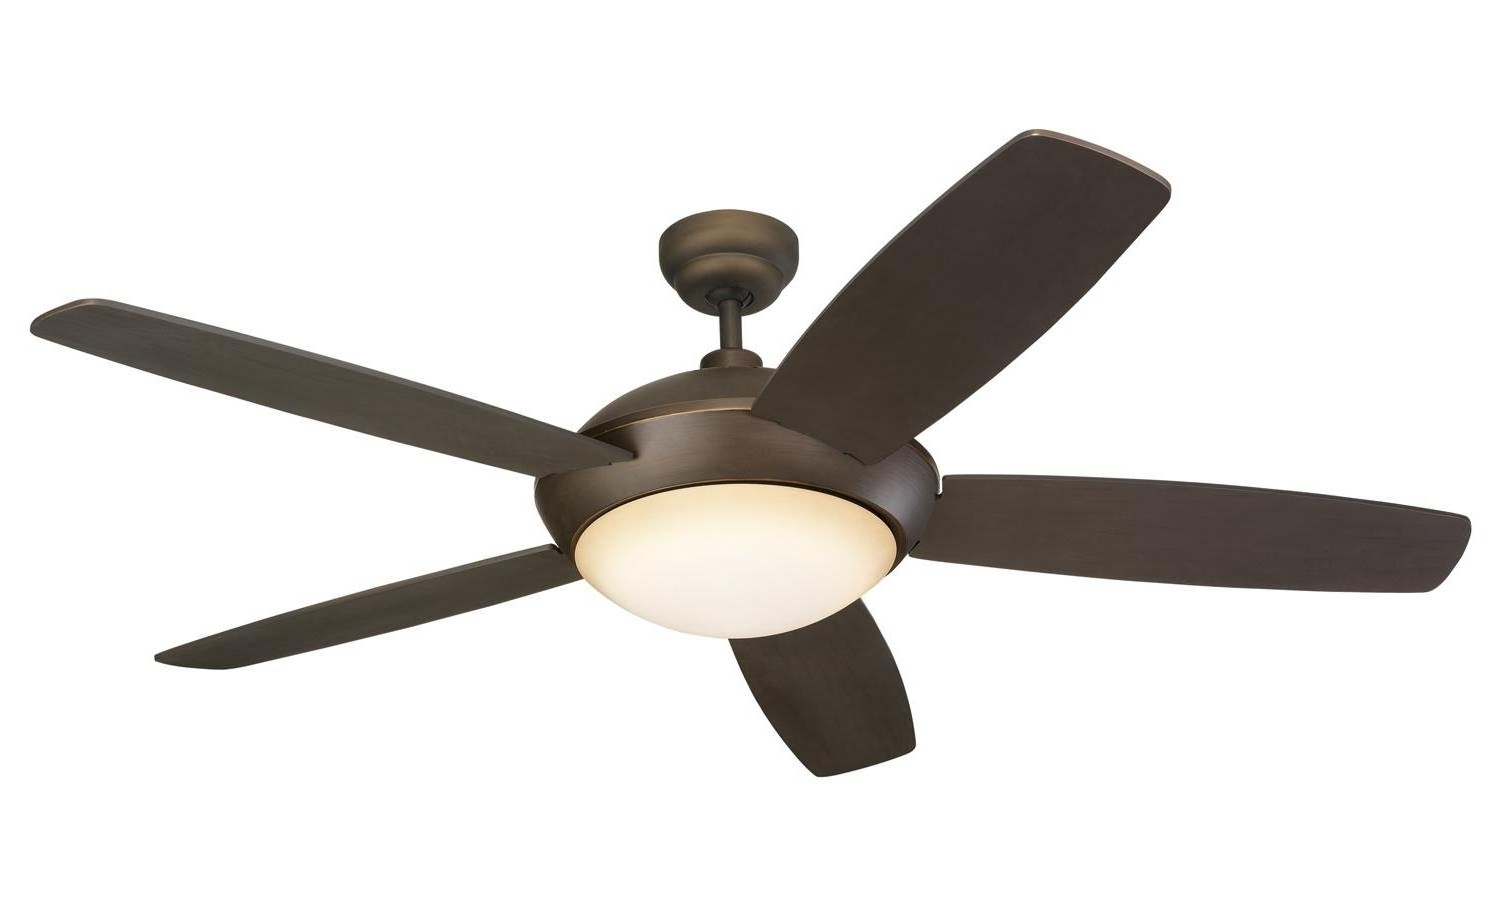 Functional Ceiling Fans With Lights And Remote Intended For Preferred Outdoor Ceiling Fans With Light And Remote (View 4 of 20)